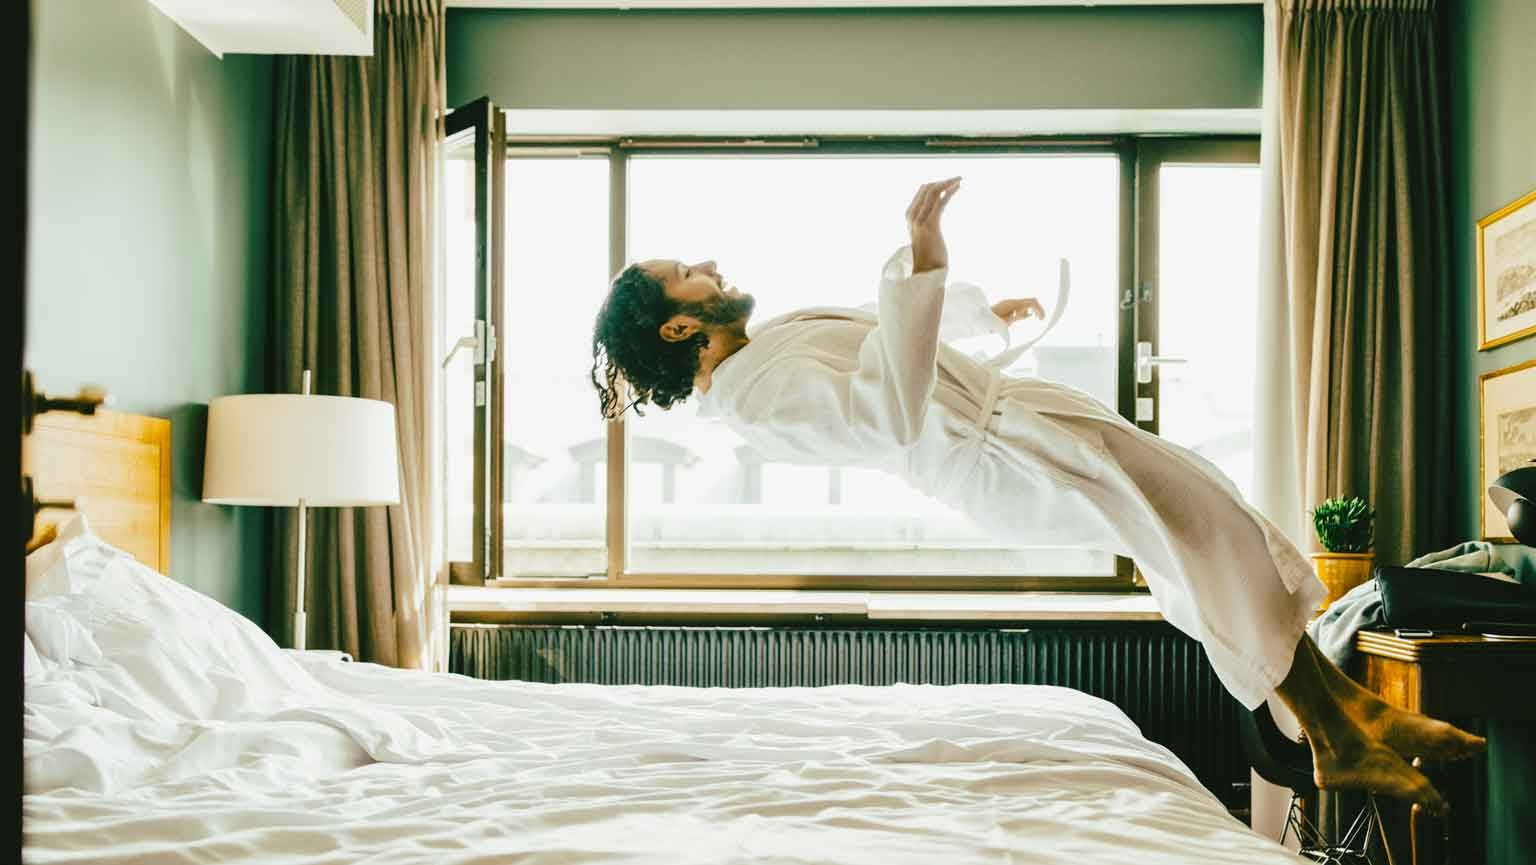 Playful man wearing robe jumping on bed at hotel